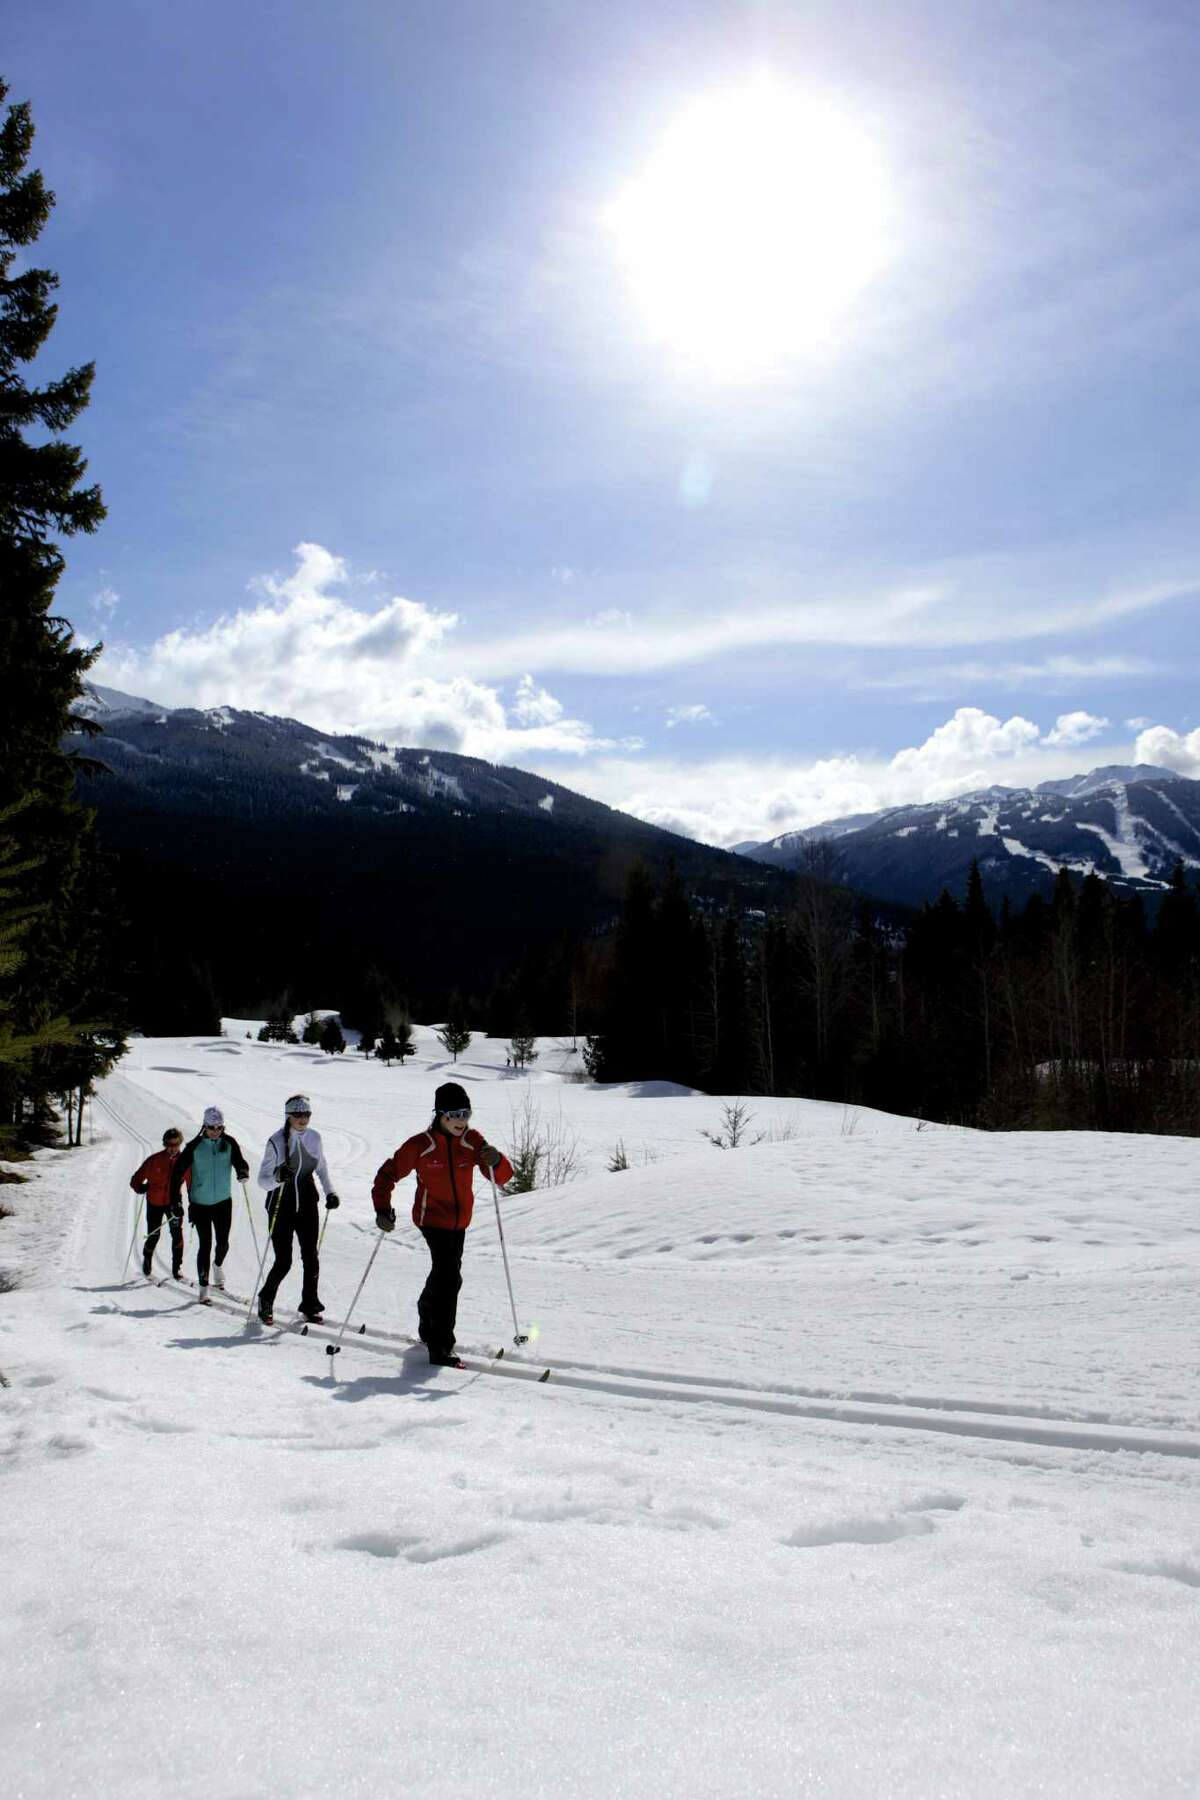 A family enjoys the cross-country skiing trails at Lost Lake in Whistler.